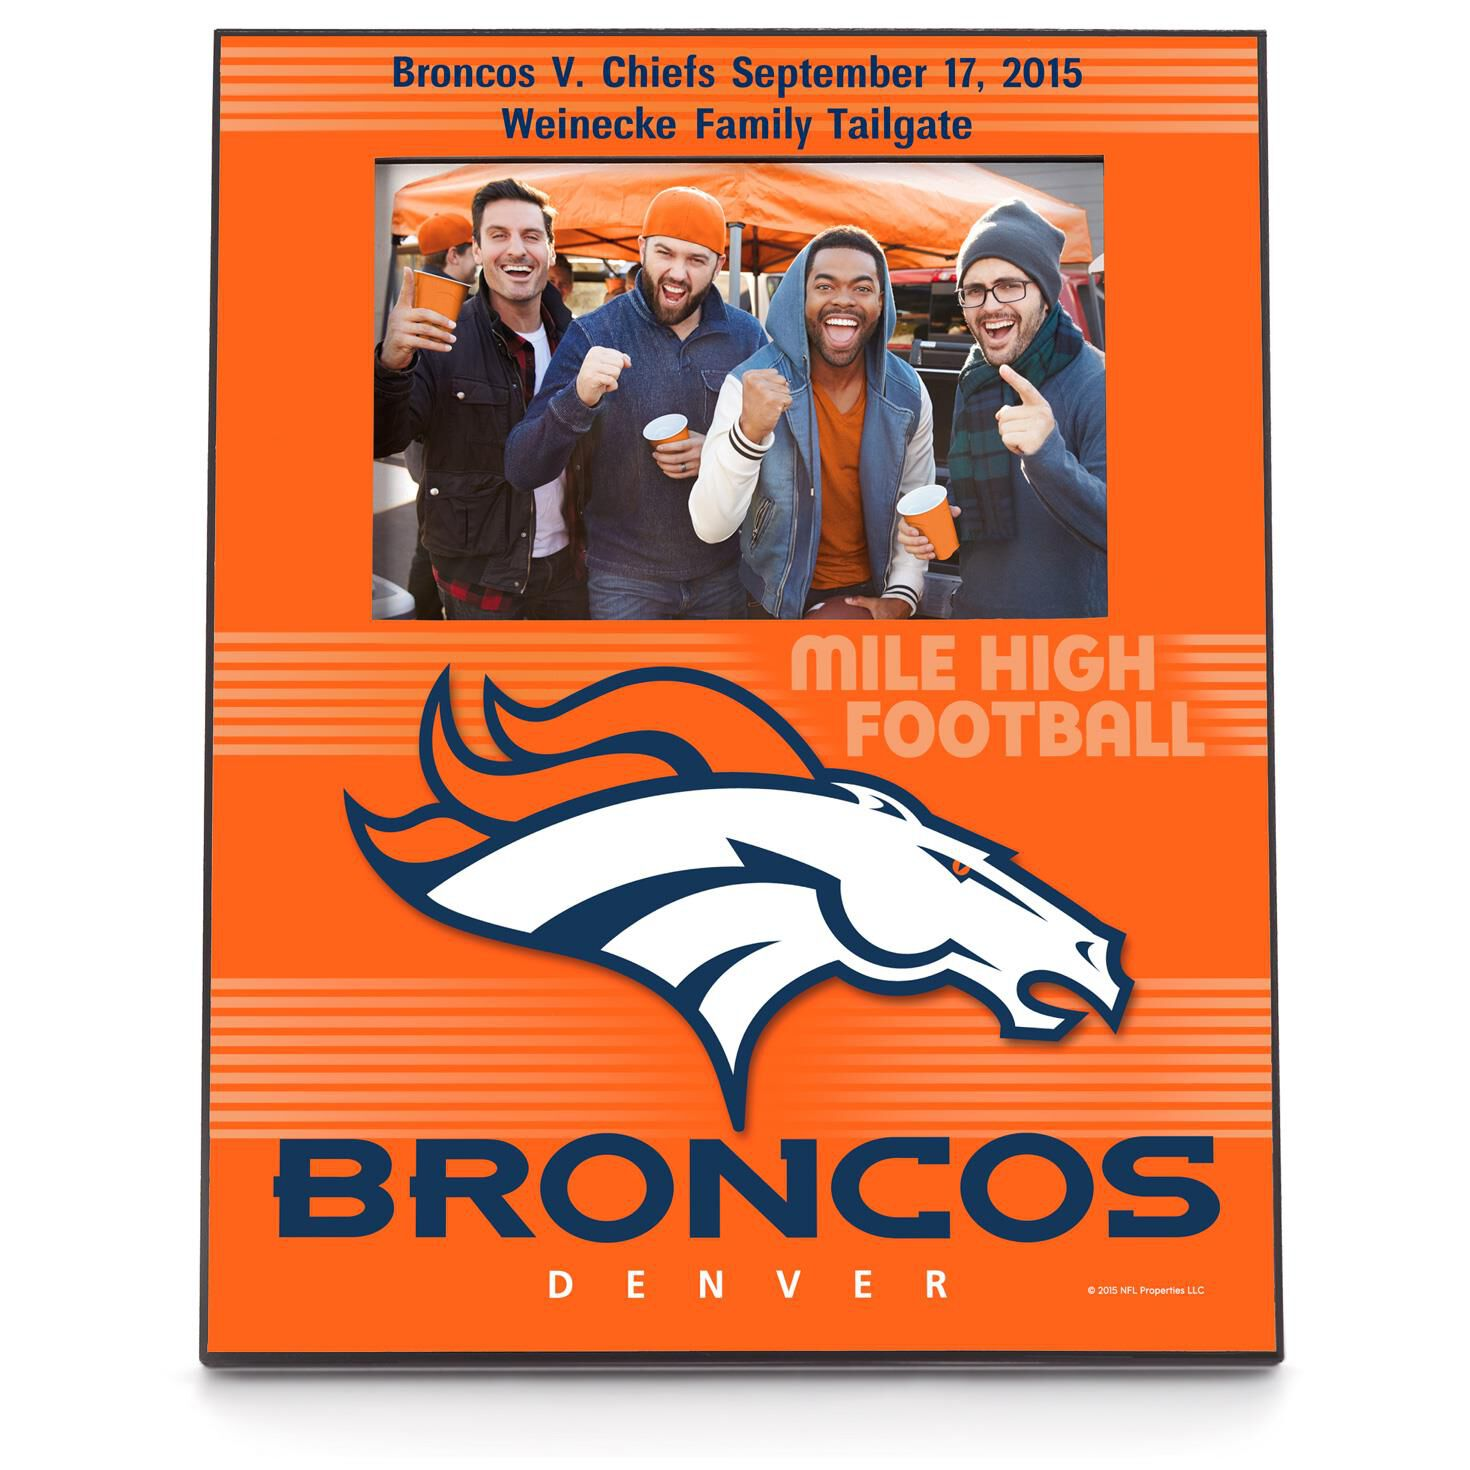 Denver broncos personalized 4x6 picture frame personalized home denver broncos personalized 4x6 picture frame personalized home decor hallmark jeuxipadfo Image collections